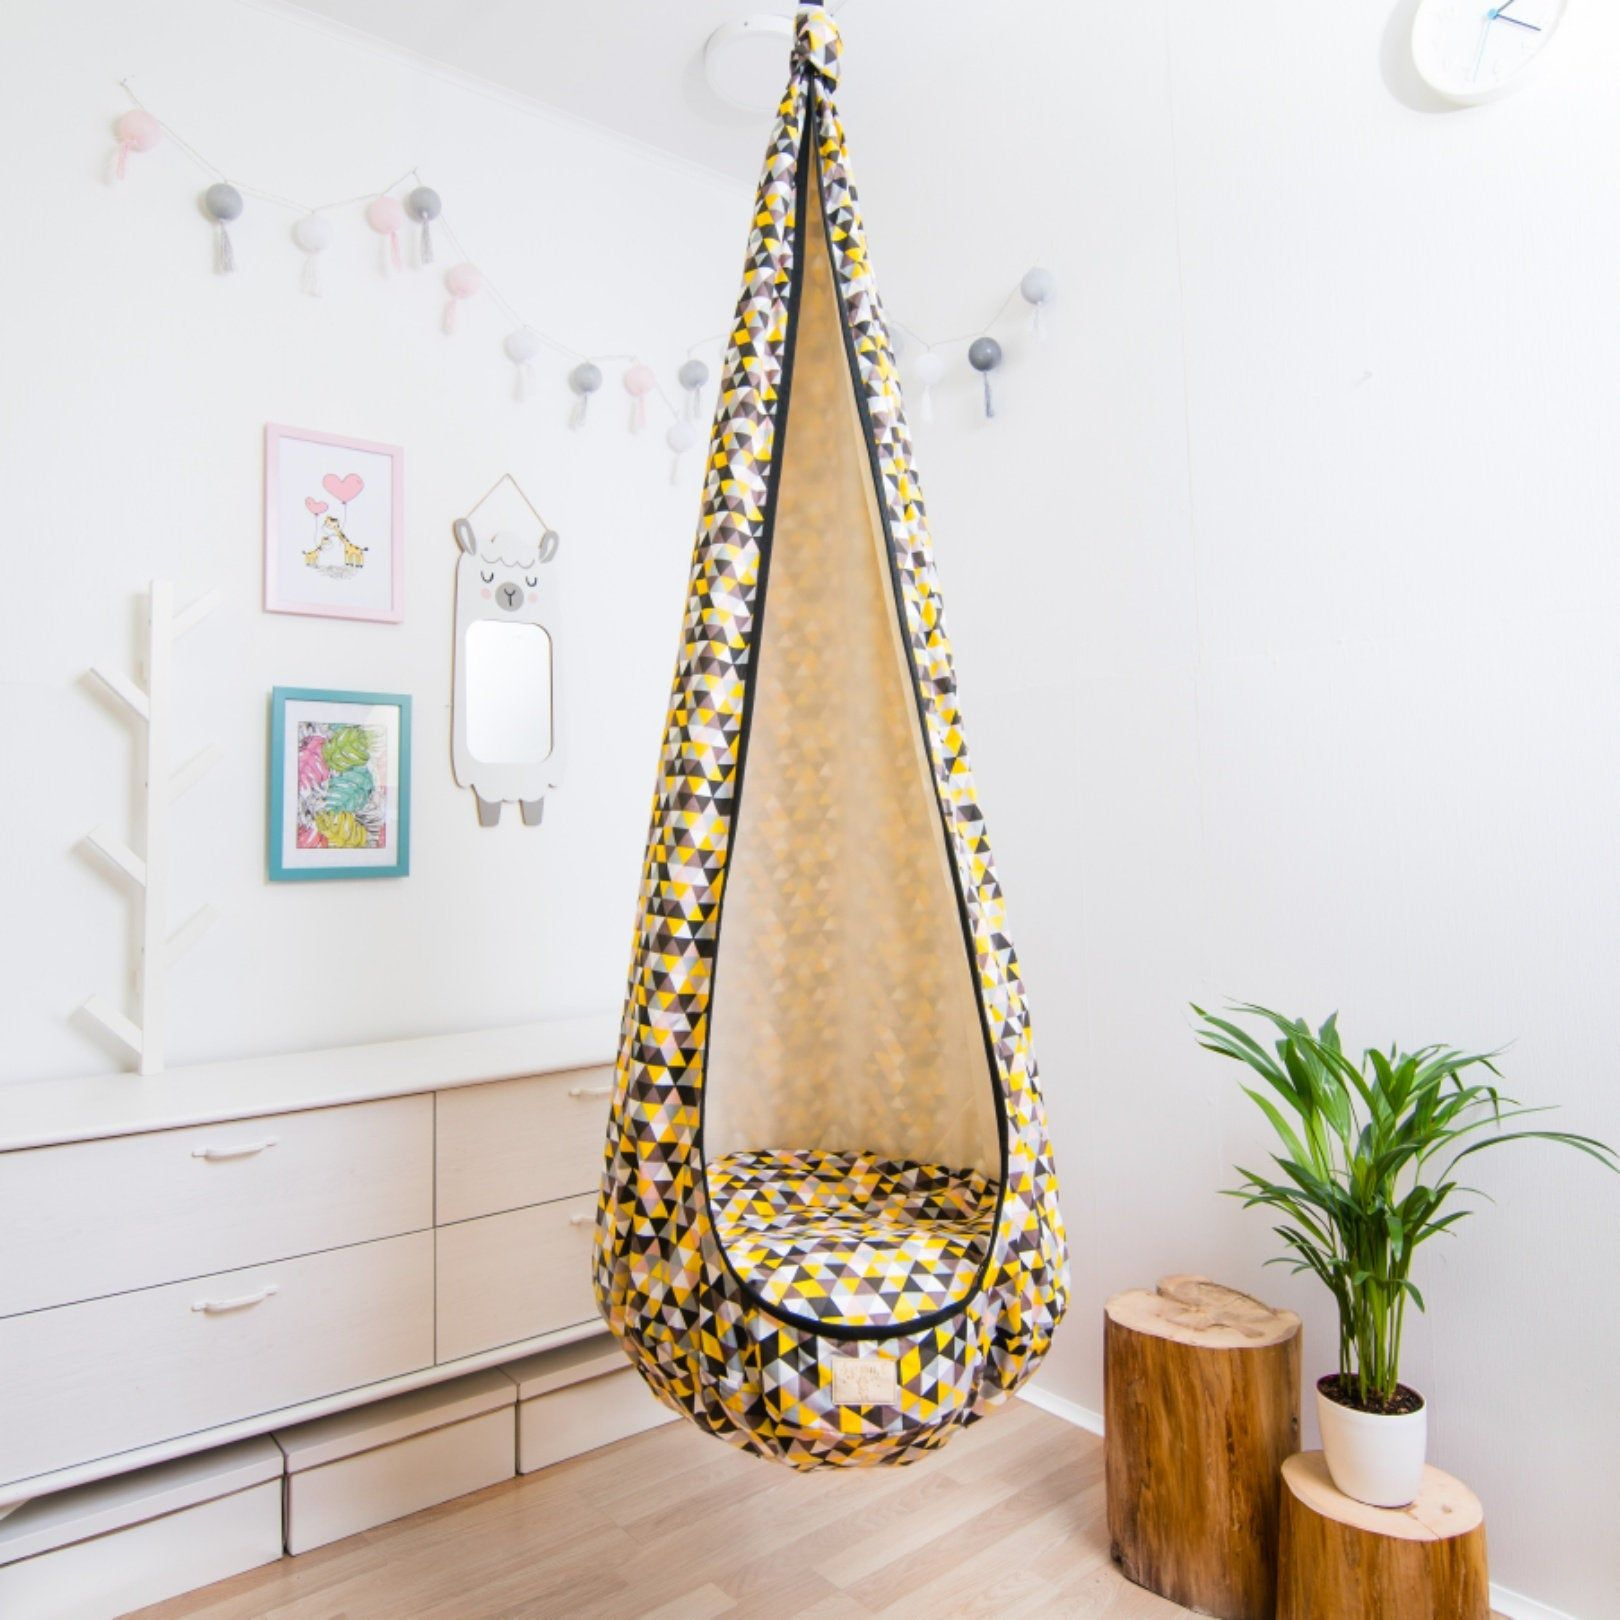 Hanging chair Cocoon Indoor toddler swing chair ...